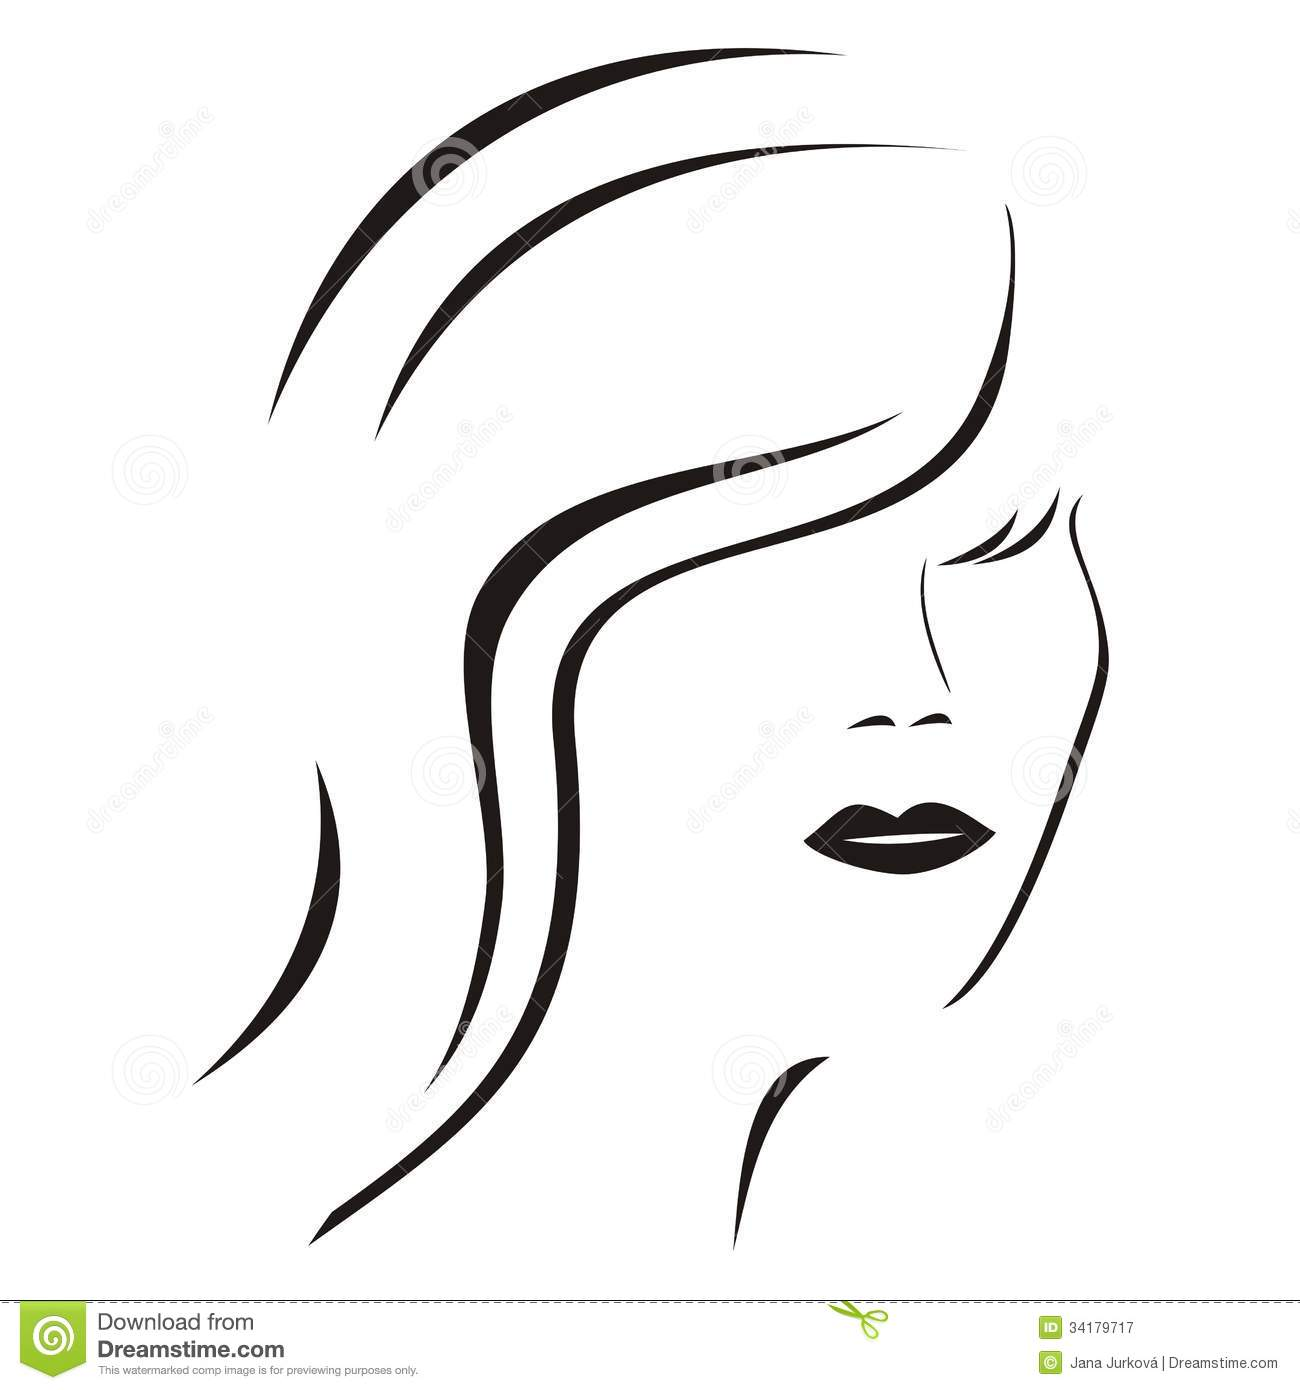 Line Drawing Lady Face : Lady silhouette stock vector illustration of human